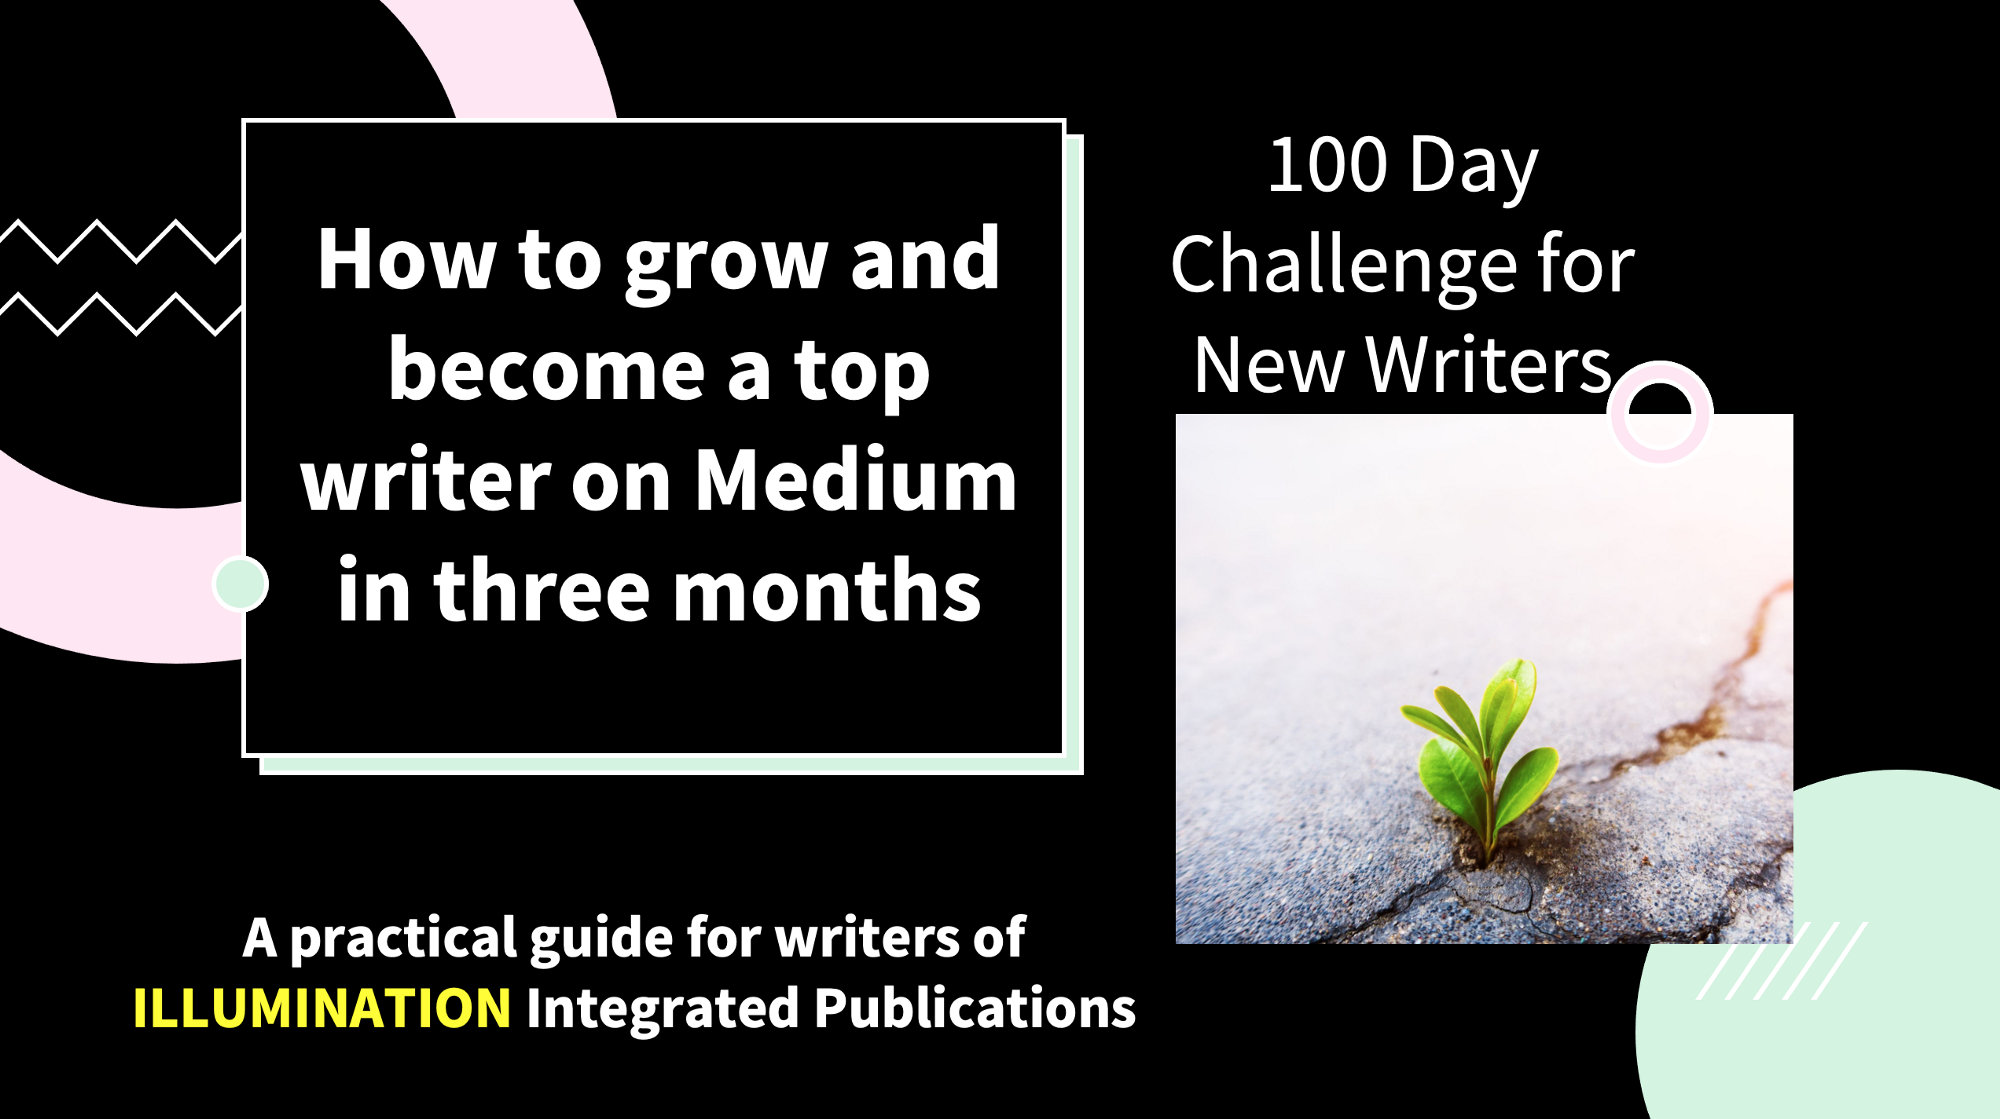 100 Day Writing Challenge For New Writers How to grow and become a top writer on Medium in three months. A guide by Dr Mehmet Yildiz—Chief Editor of ILLUMINATION Integrated Publications on Medium.